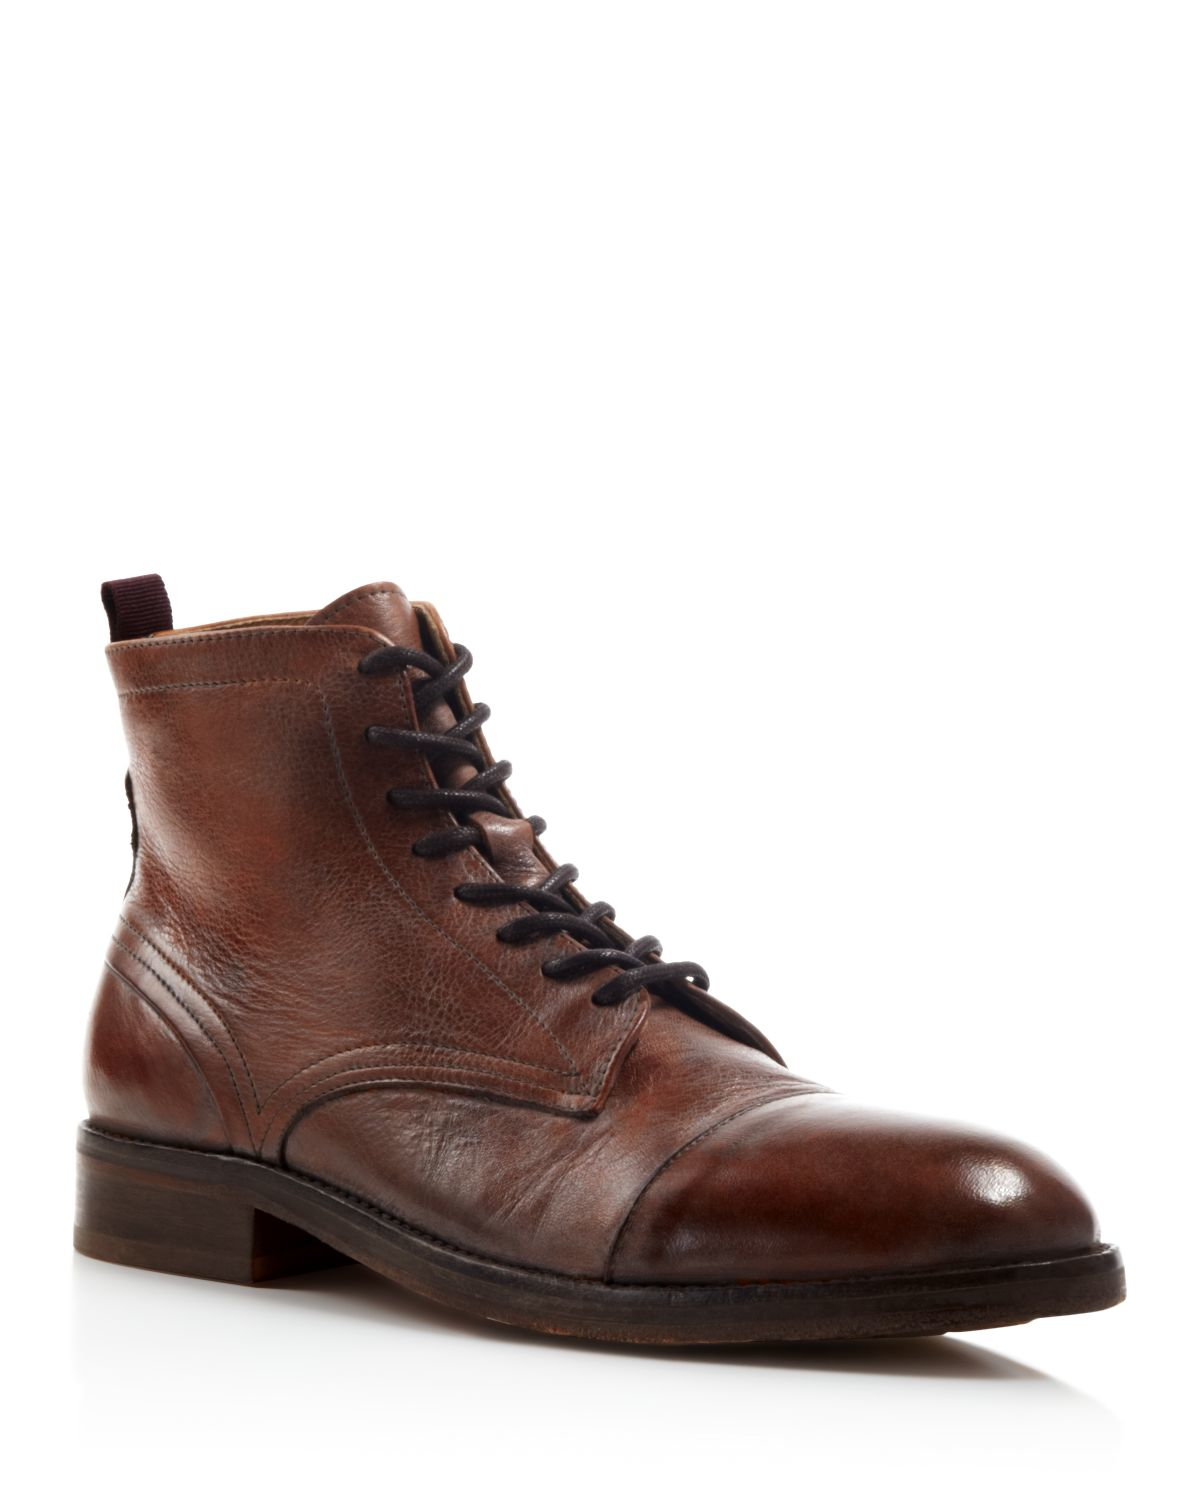 h by hudson palmer cap toe boots in brown lyst. Black Bedroom Furniture Sets. Home Design Ideas